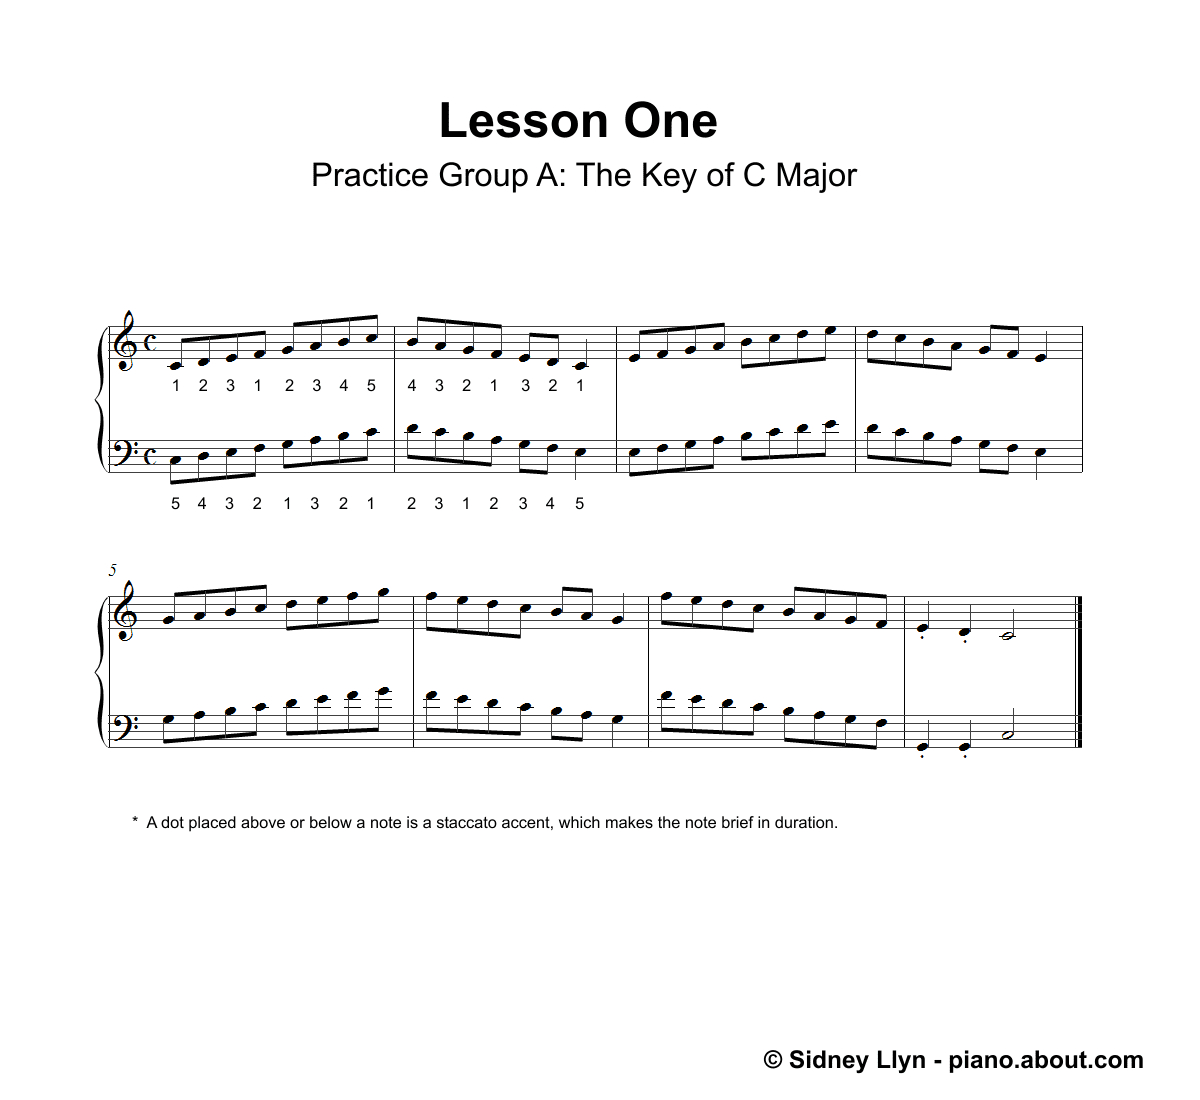 Beginner Piano Lesson Book - Piano Sheet Music For Beginners Popular Songs Free Printable